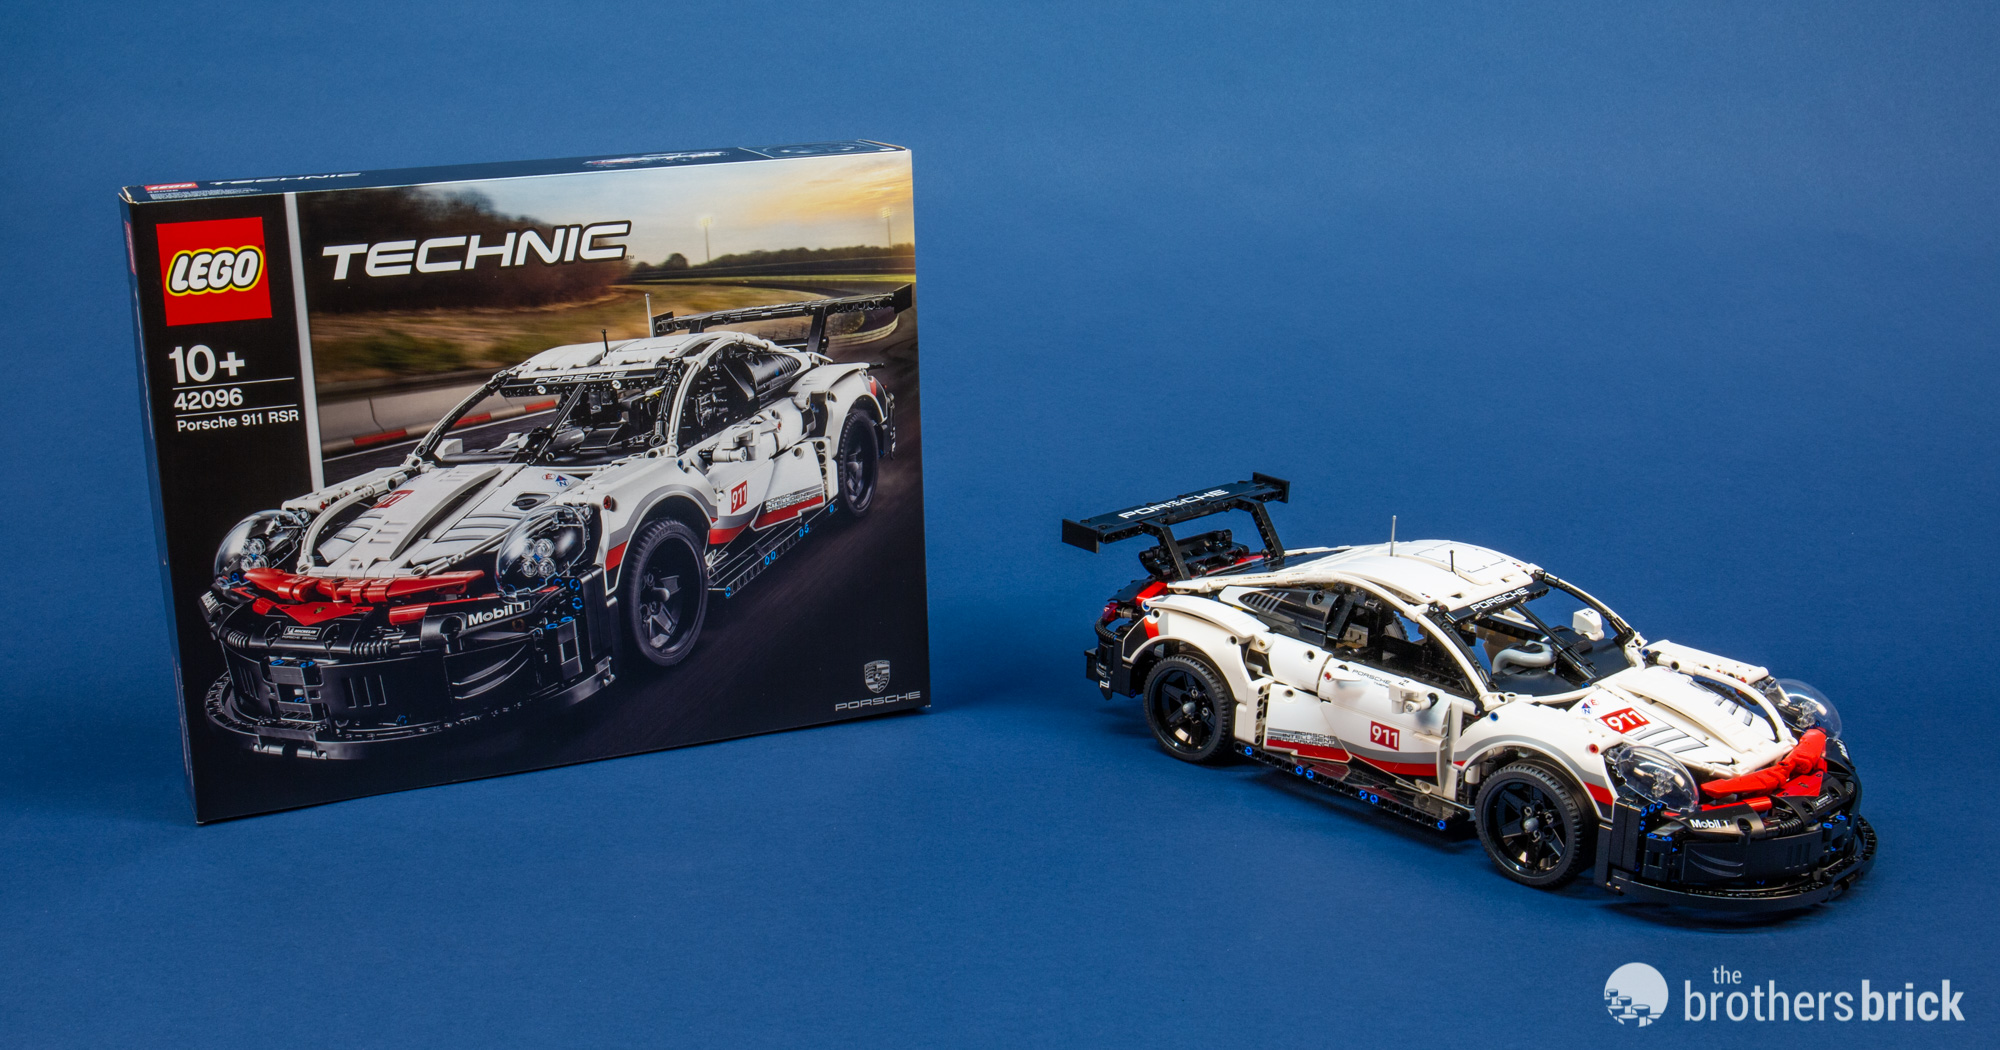 2019 39 s lego technic 42096 porsche 911 rsr is 1 500 pieces of lean racing looks review the. Black Bedroom Furniture Sets. Home Design Ideas